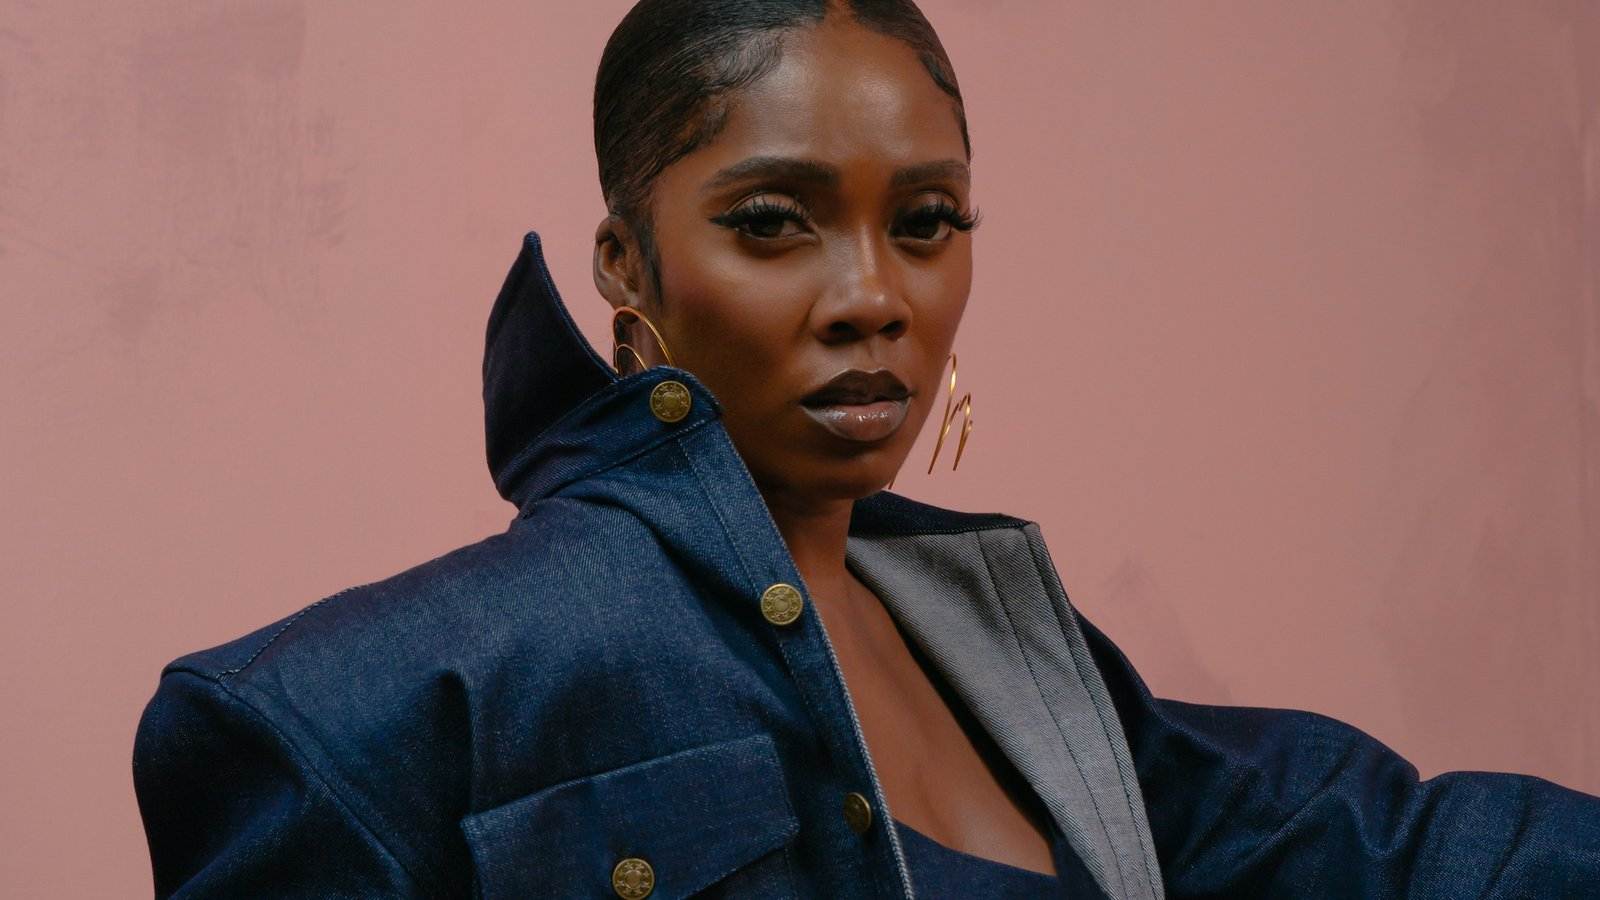 Tiwa Savage's Video Reaches 1.4 million YouTube Views in 24hrs